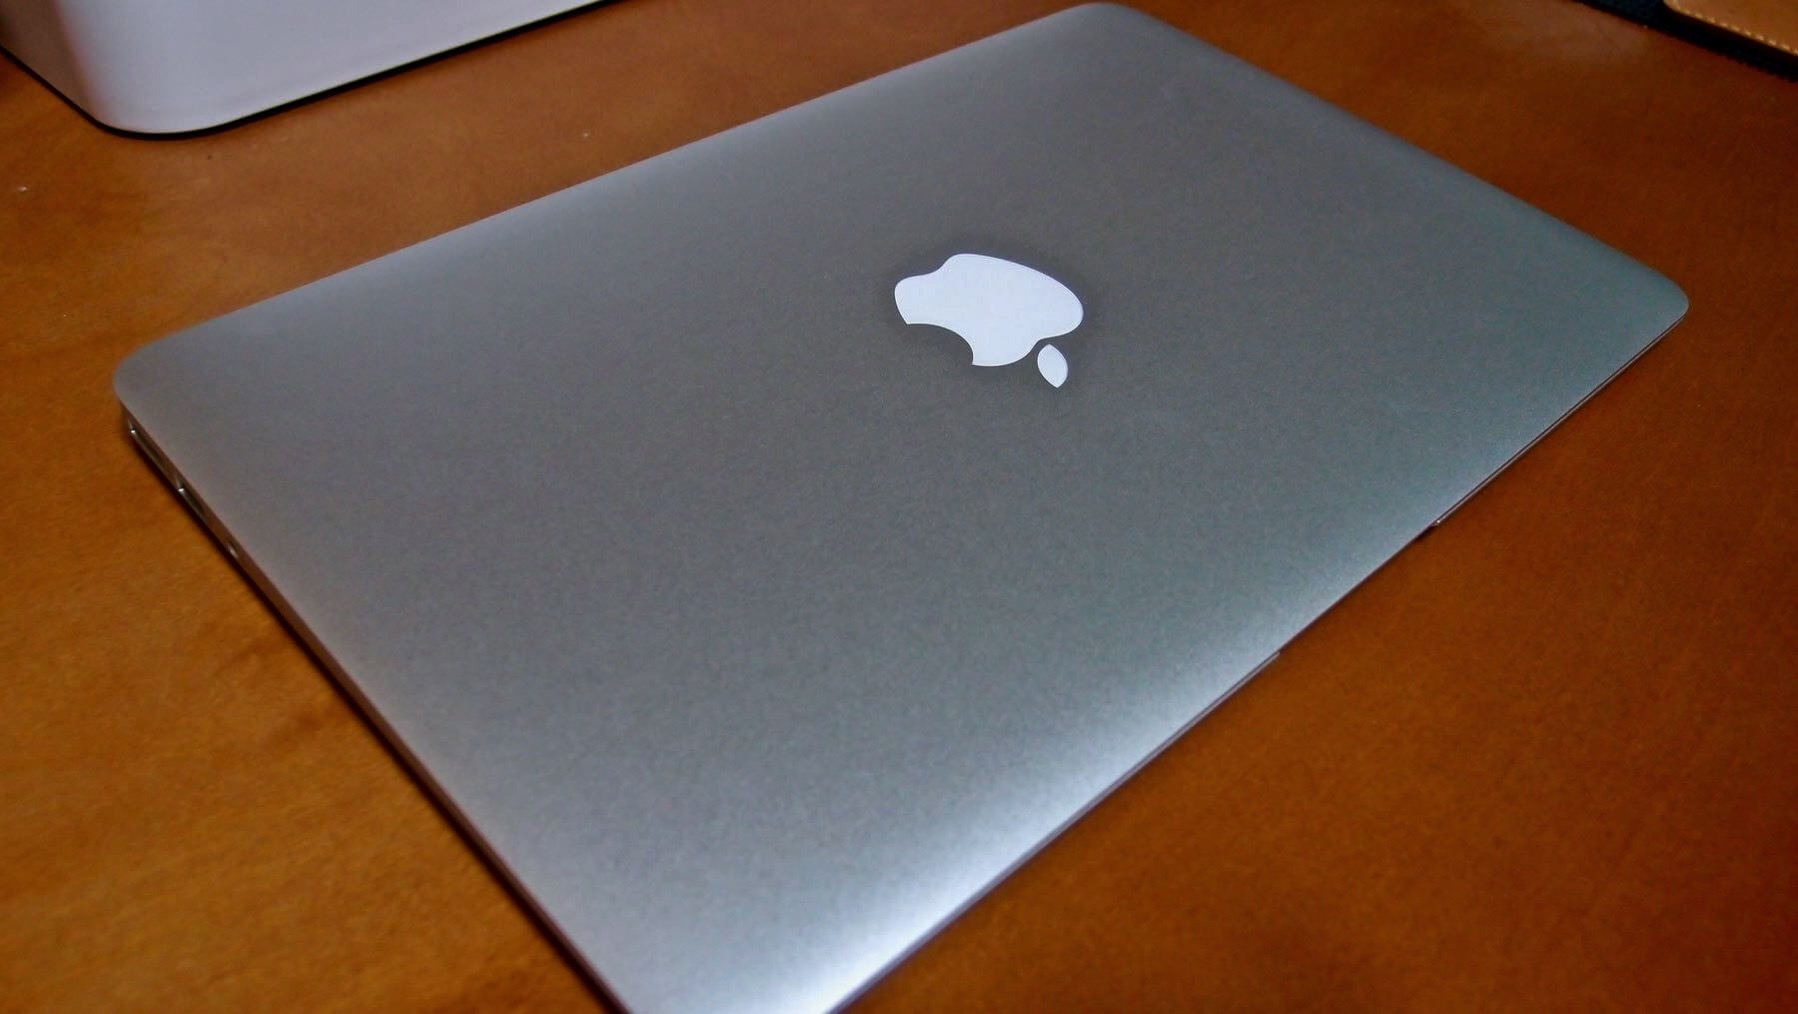 03 MacBook Air2013 Mid 11inch